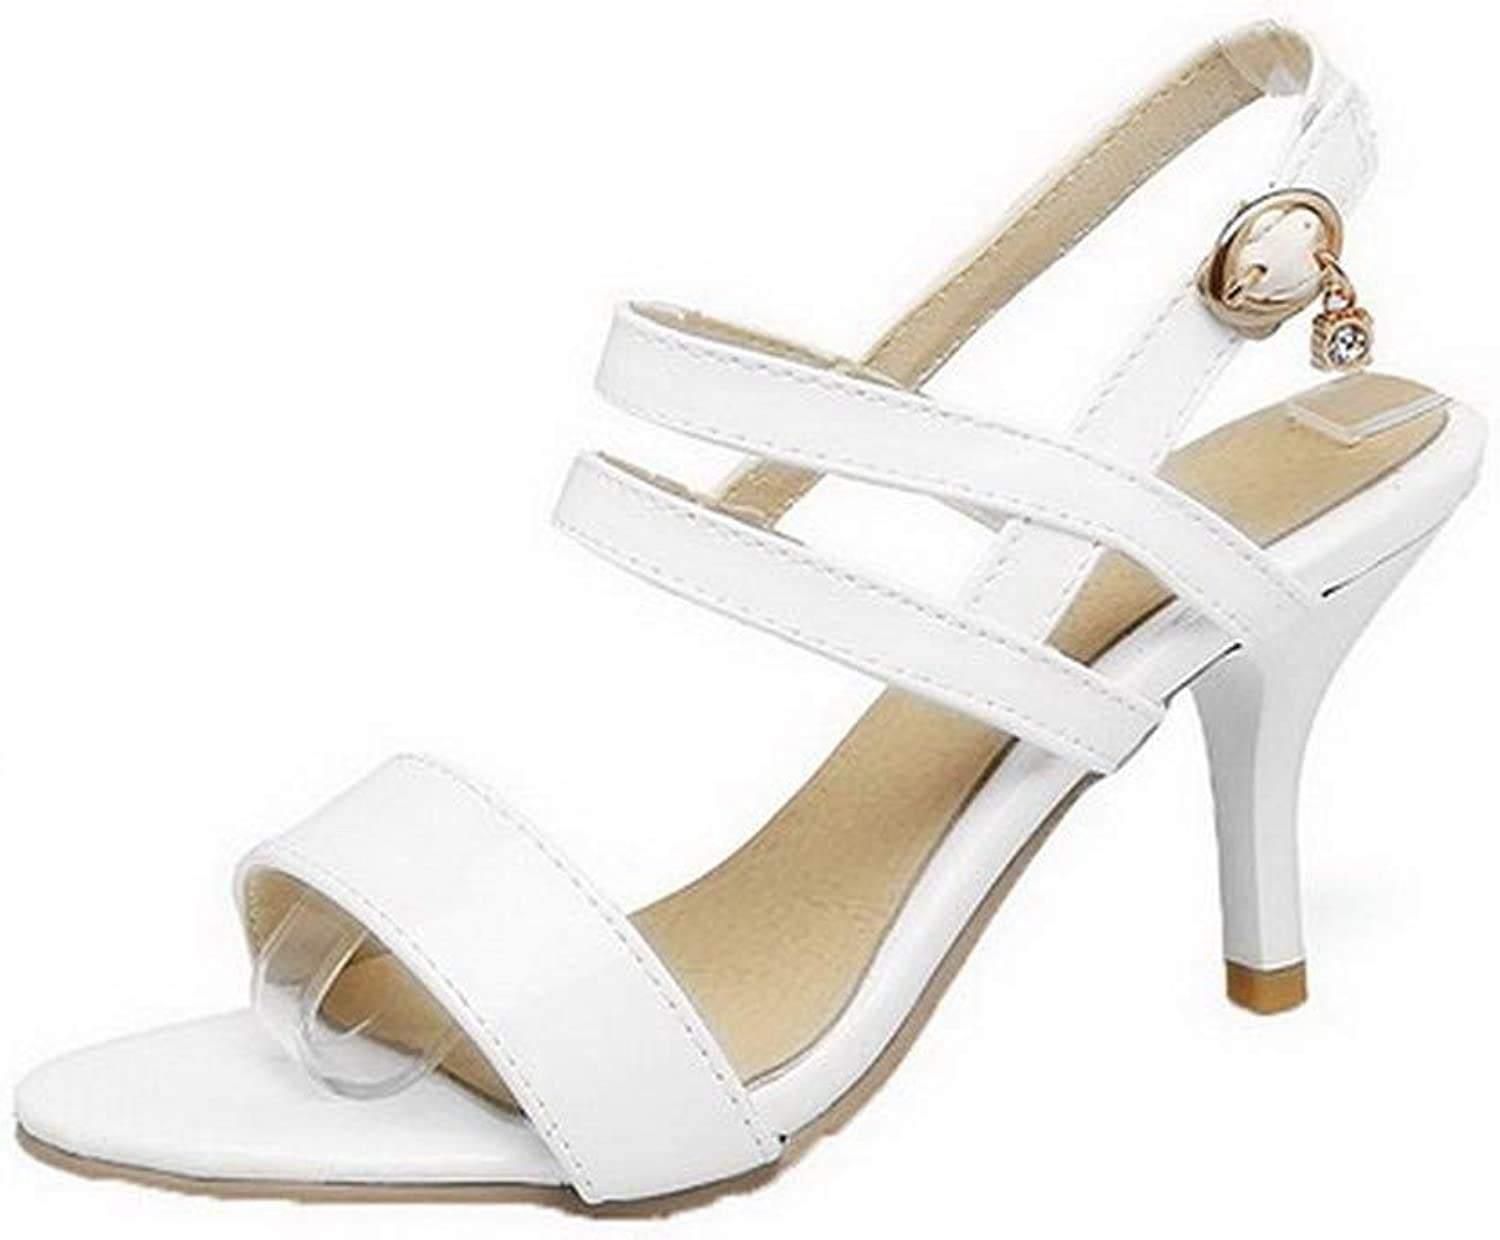 AmoonyFashion Women's Solid Patent Leather High-Heels Buckle Open-Toe Sandals, BUTLT008030